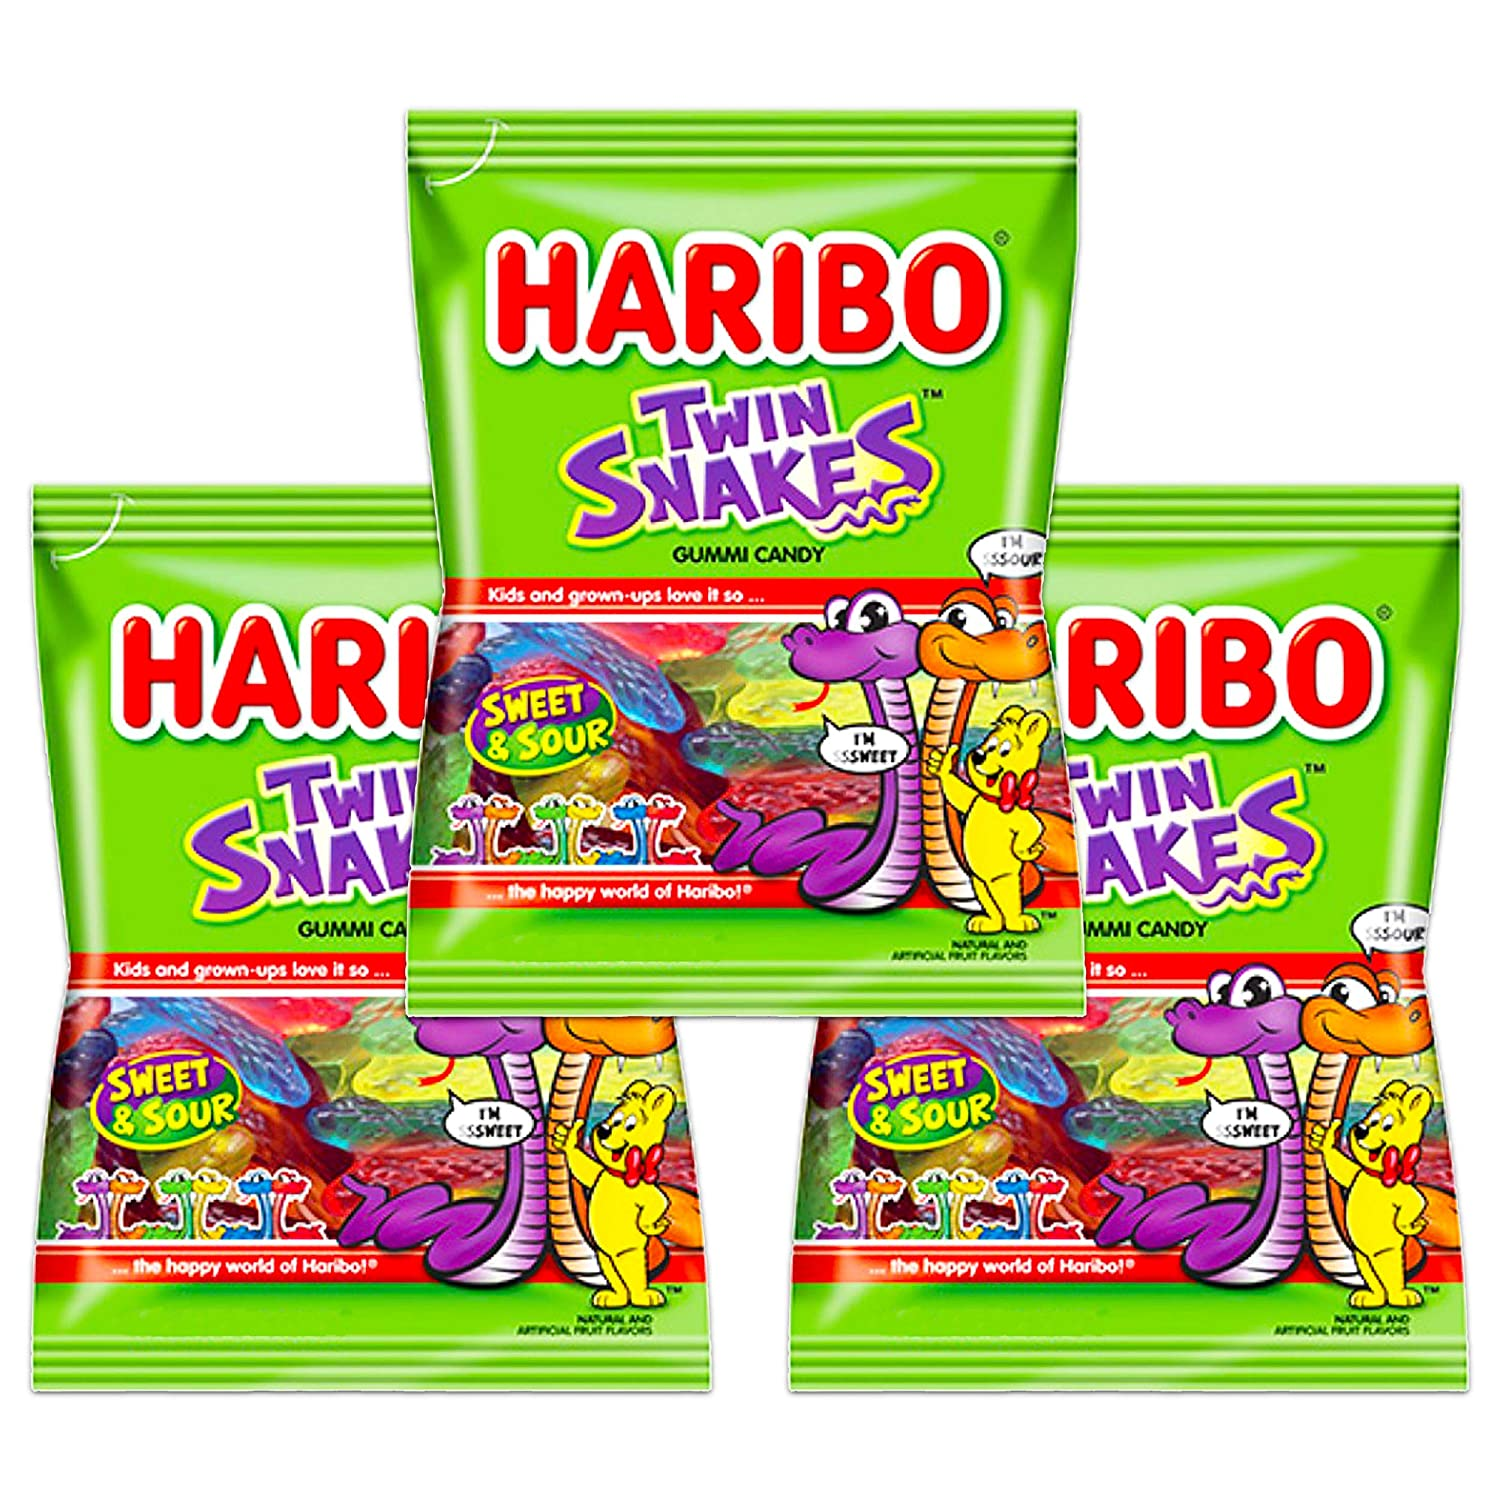 Haribo Twin Snakes Sweet & Sour Gummi Candy 4oz Bag (Pack of 3)